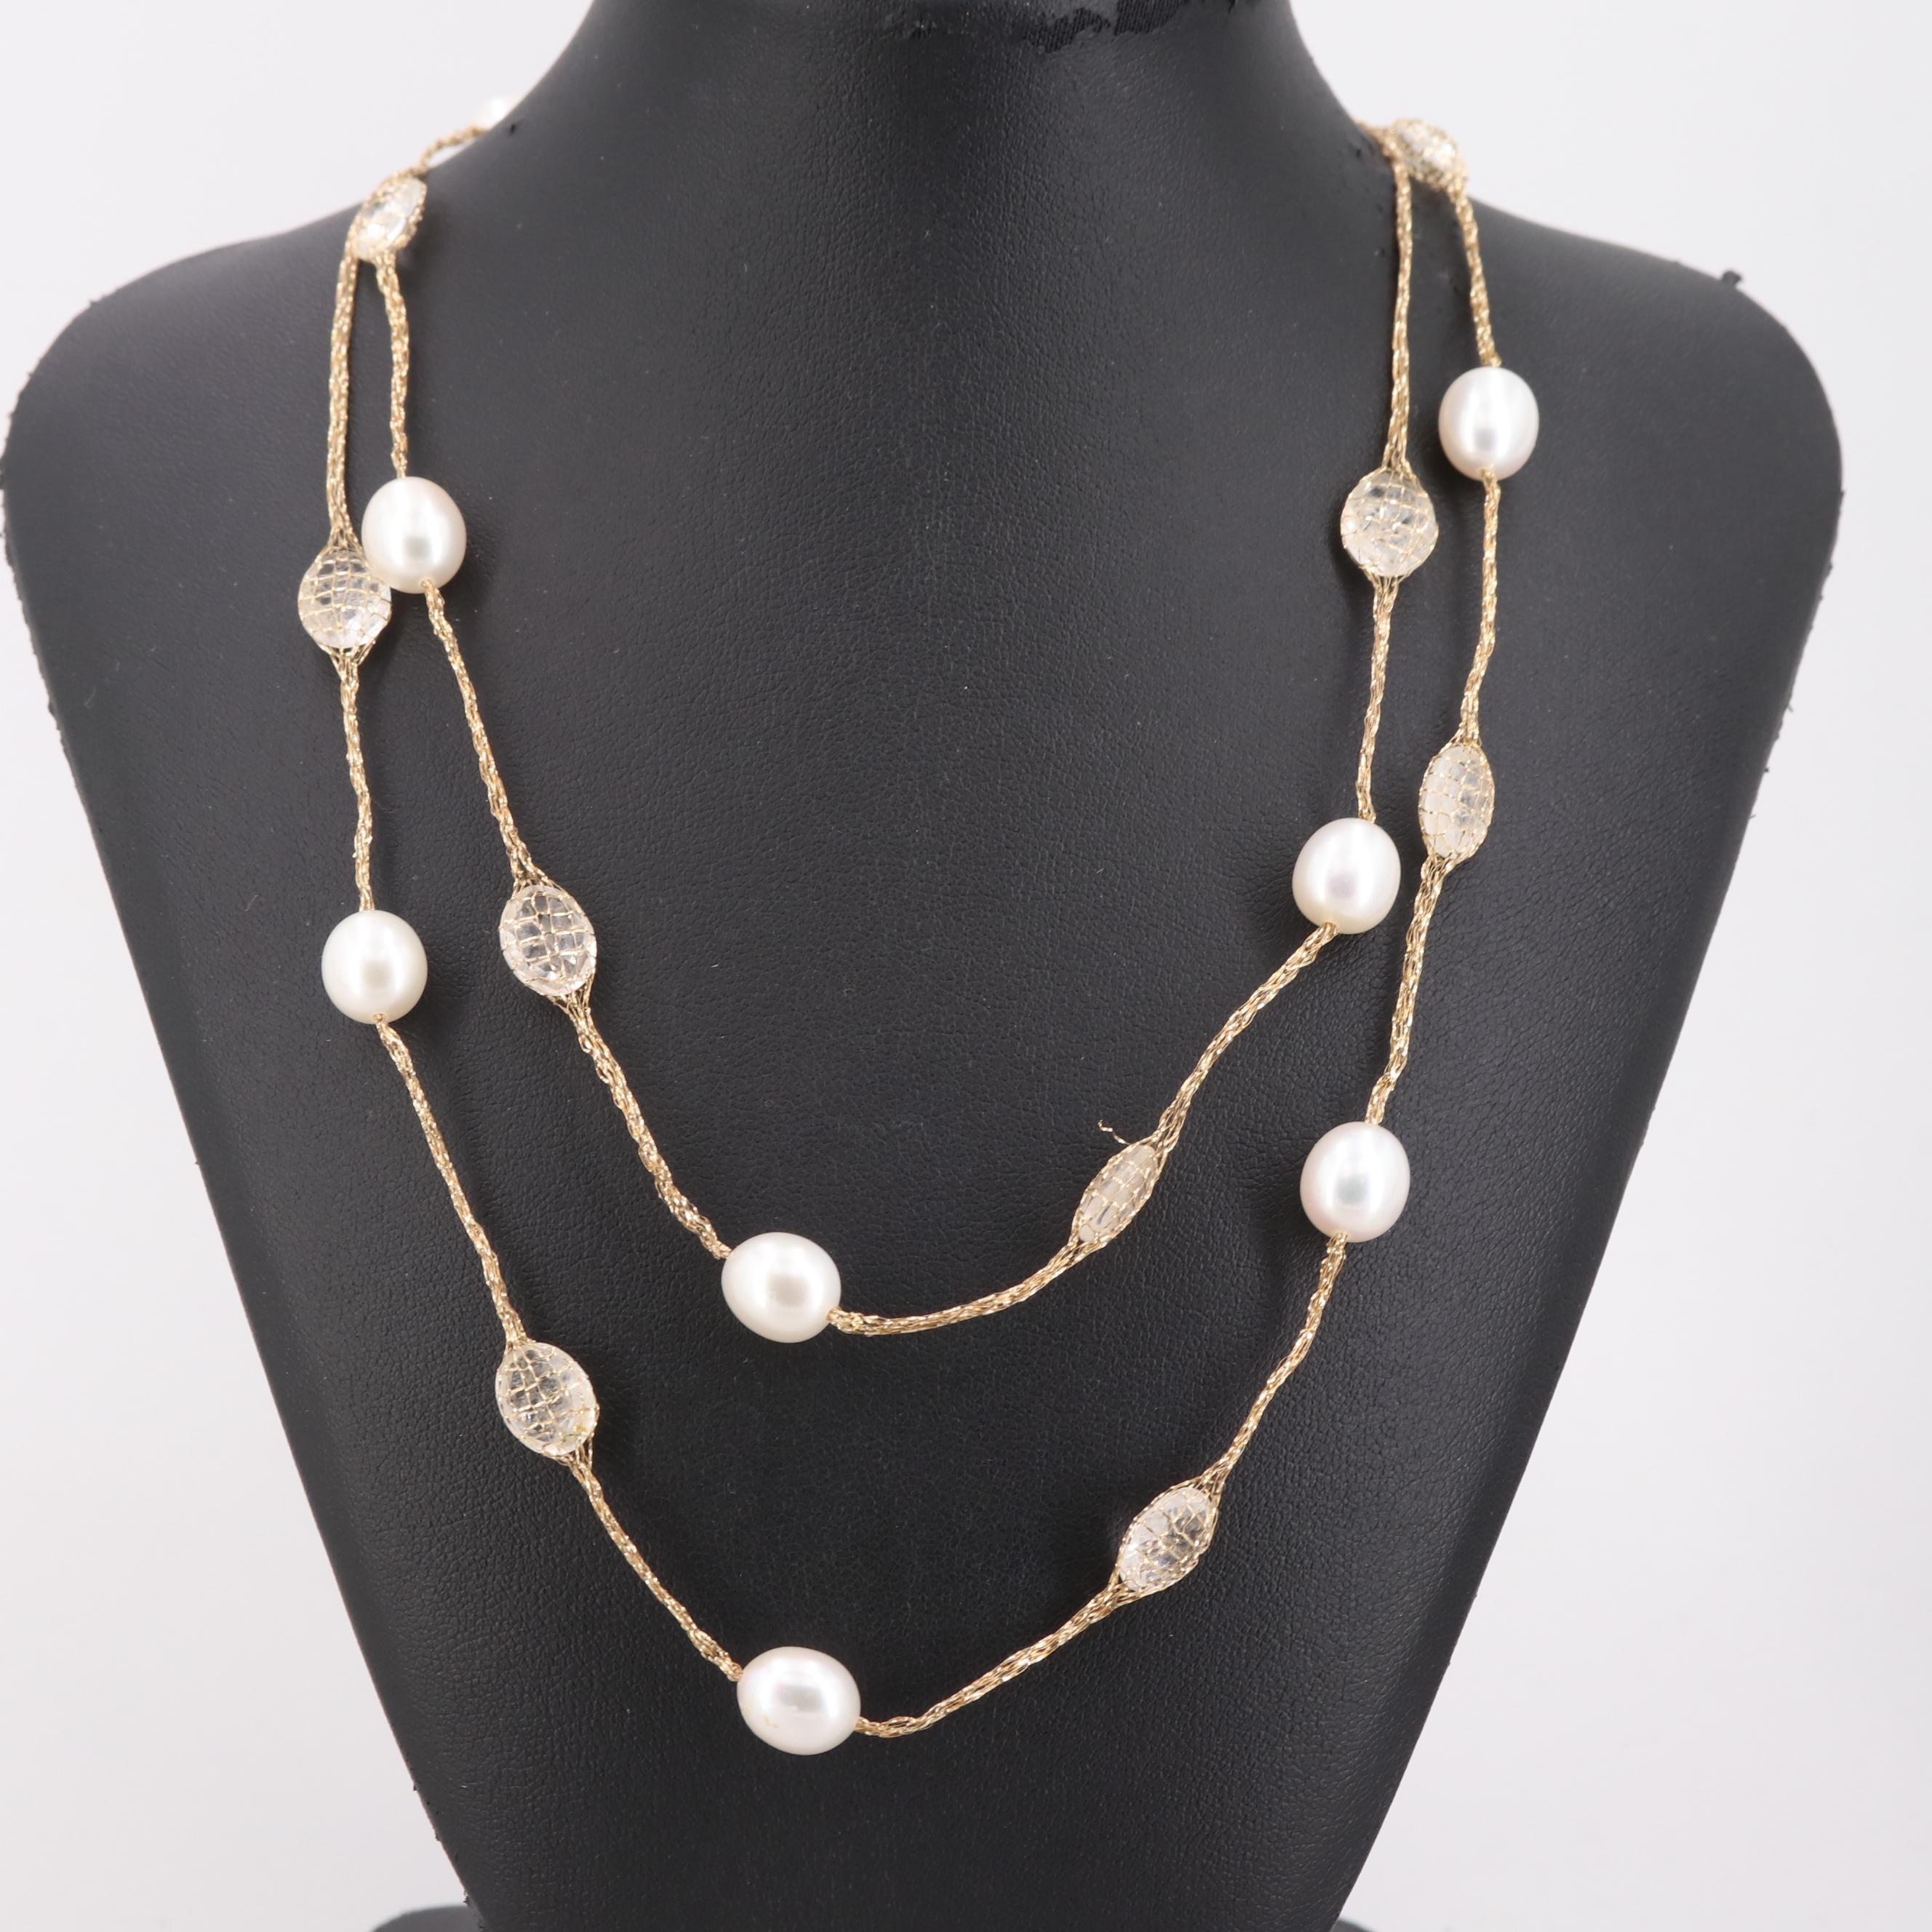 14K Yellow Gold Quartz and Cultured Pearl Mesh Necklace